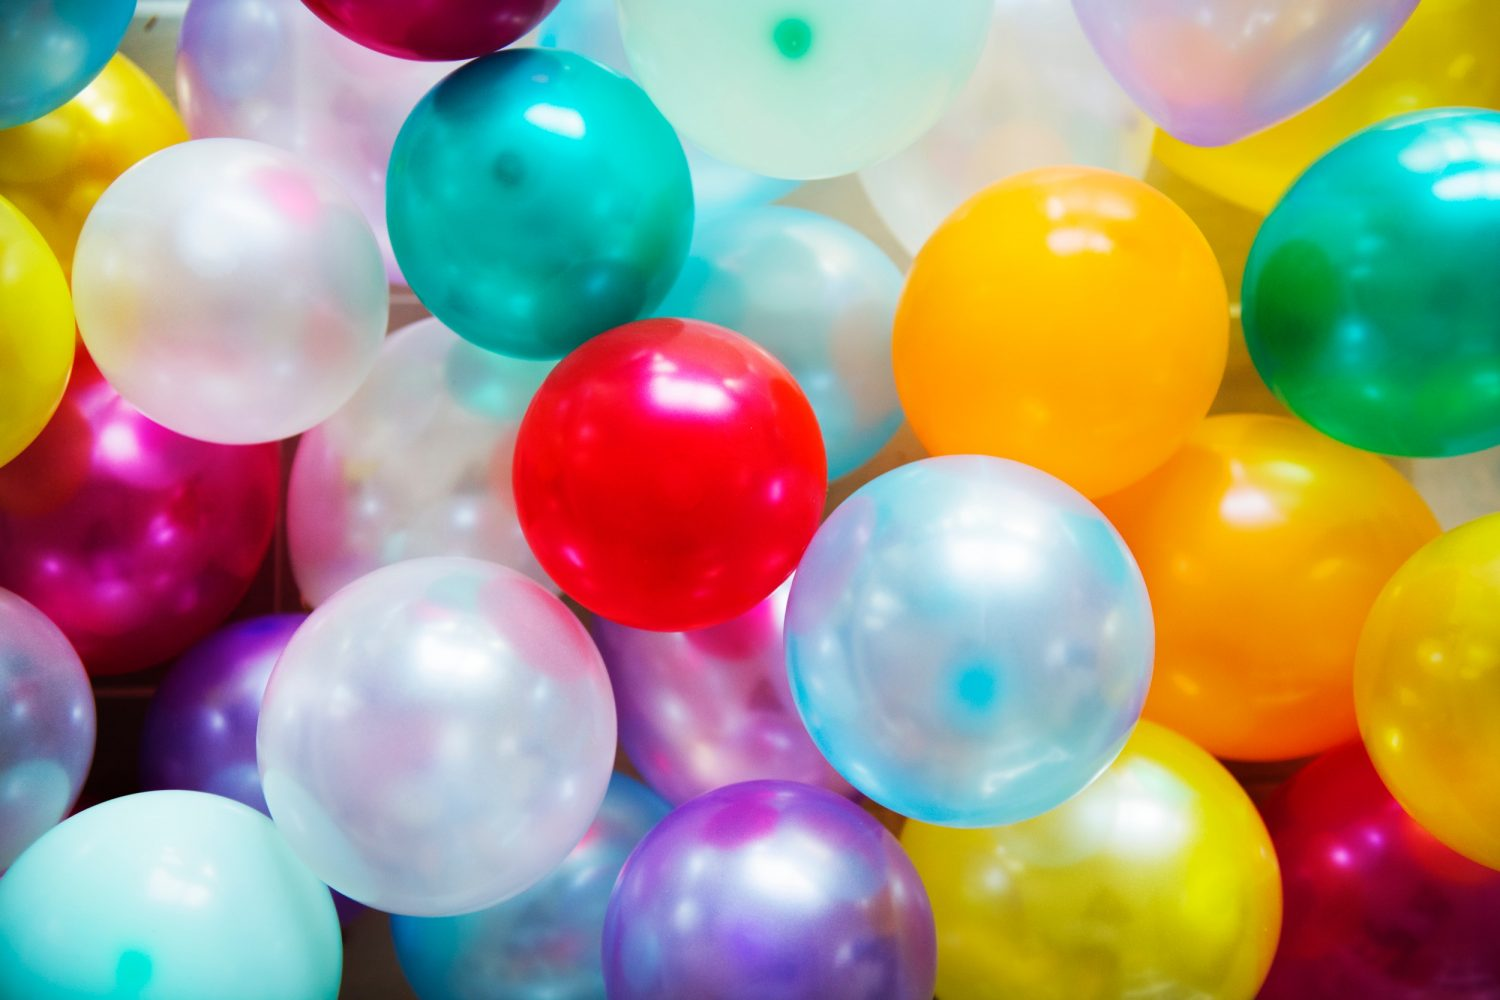 Image of multicolor balloons